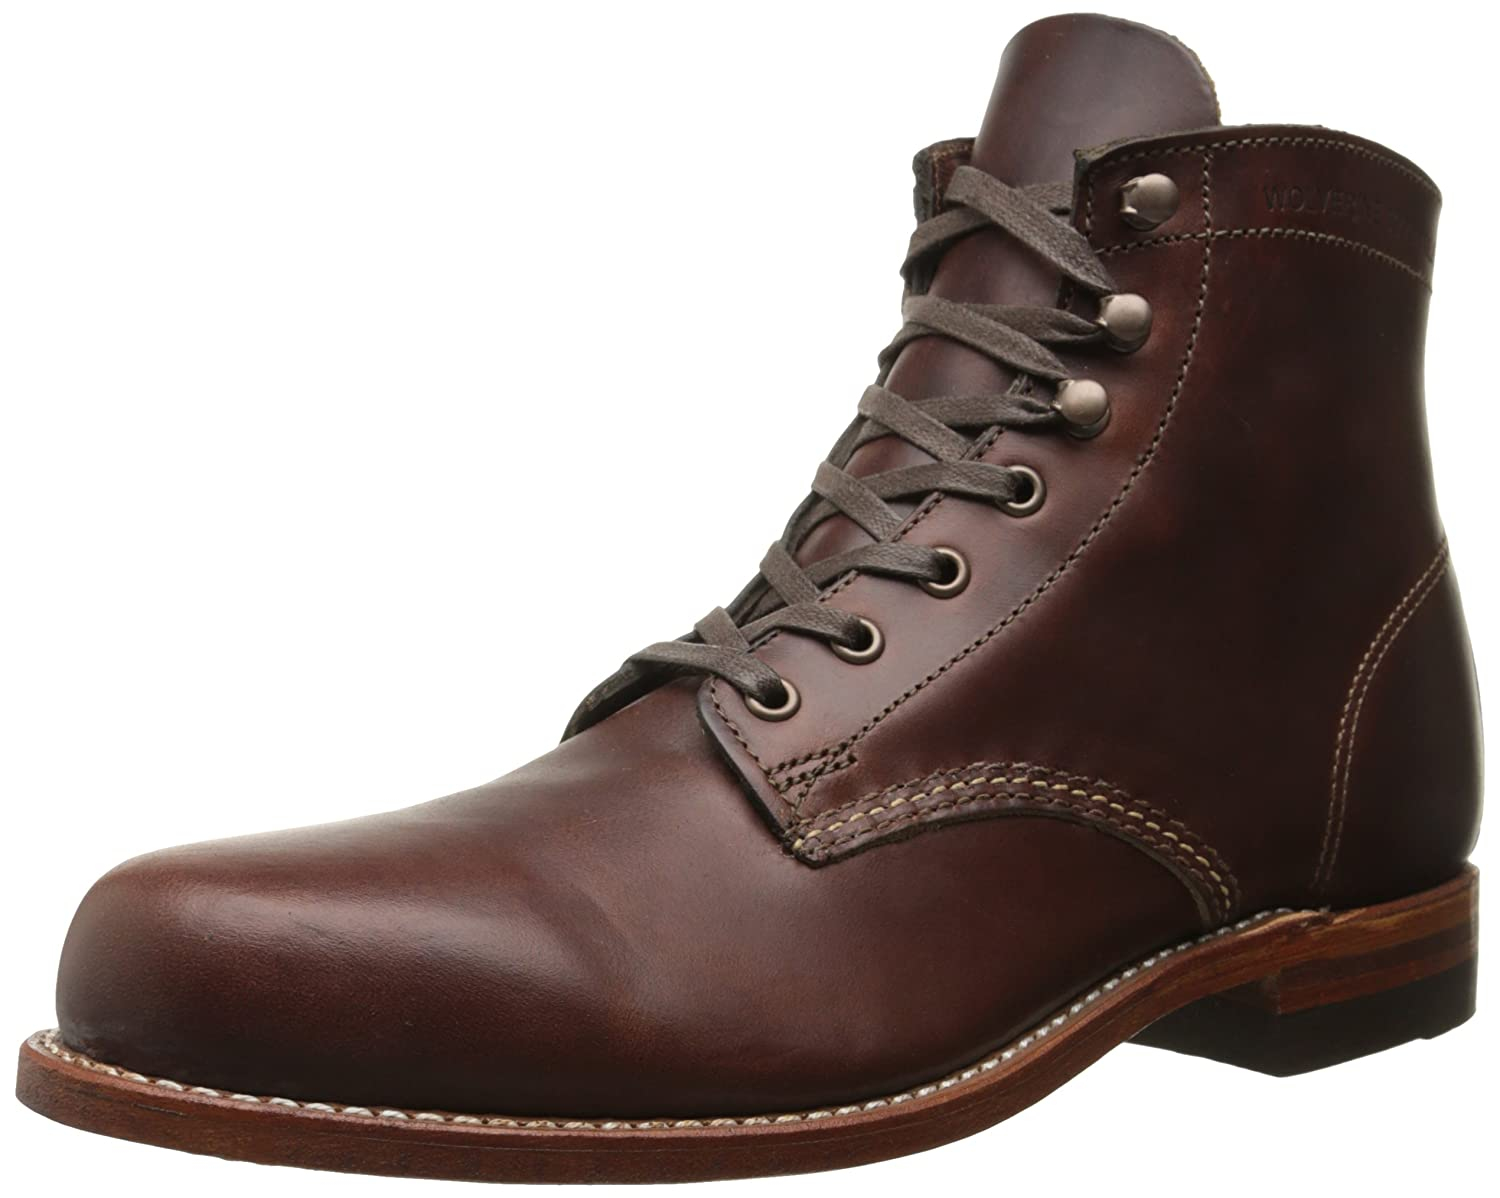 Wolverine 1000 Mile Men's Wolverine 1000 Mile Boots B002KYV5B2 9 D(M) US|Brown